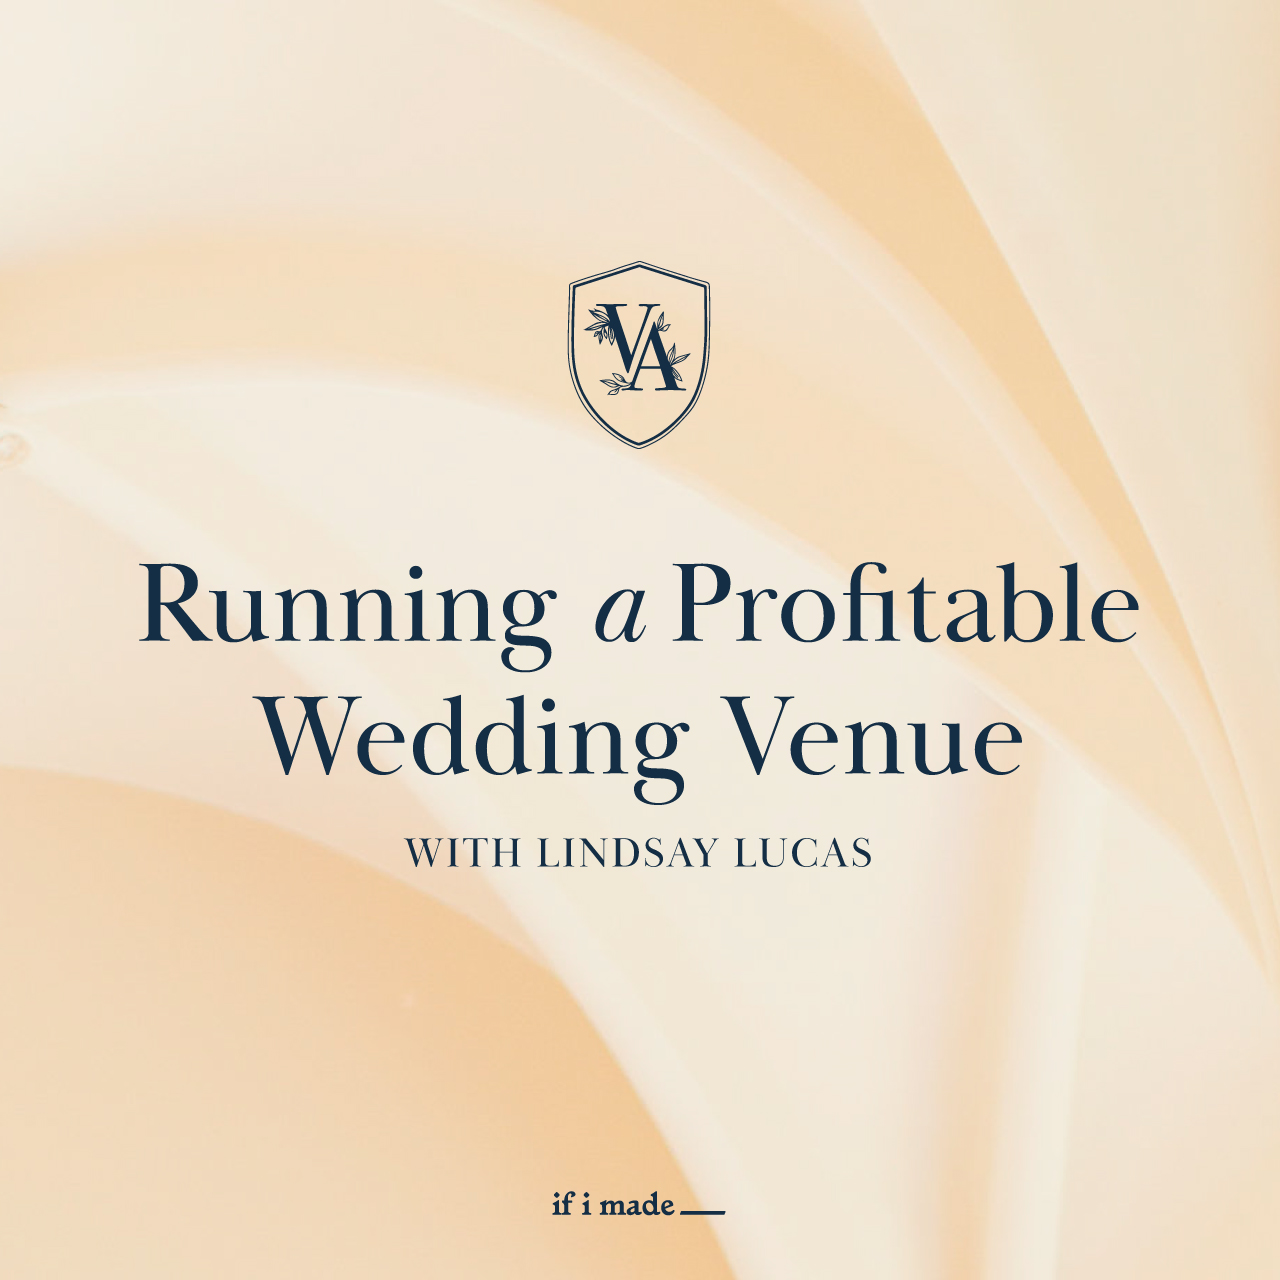 Running a Profitable Wedding Venue